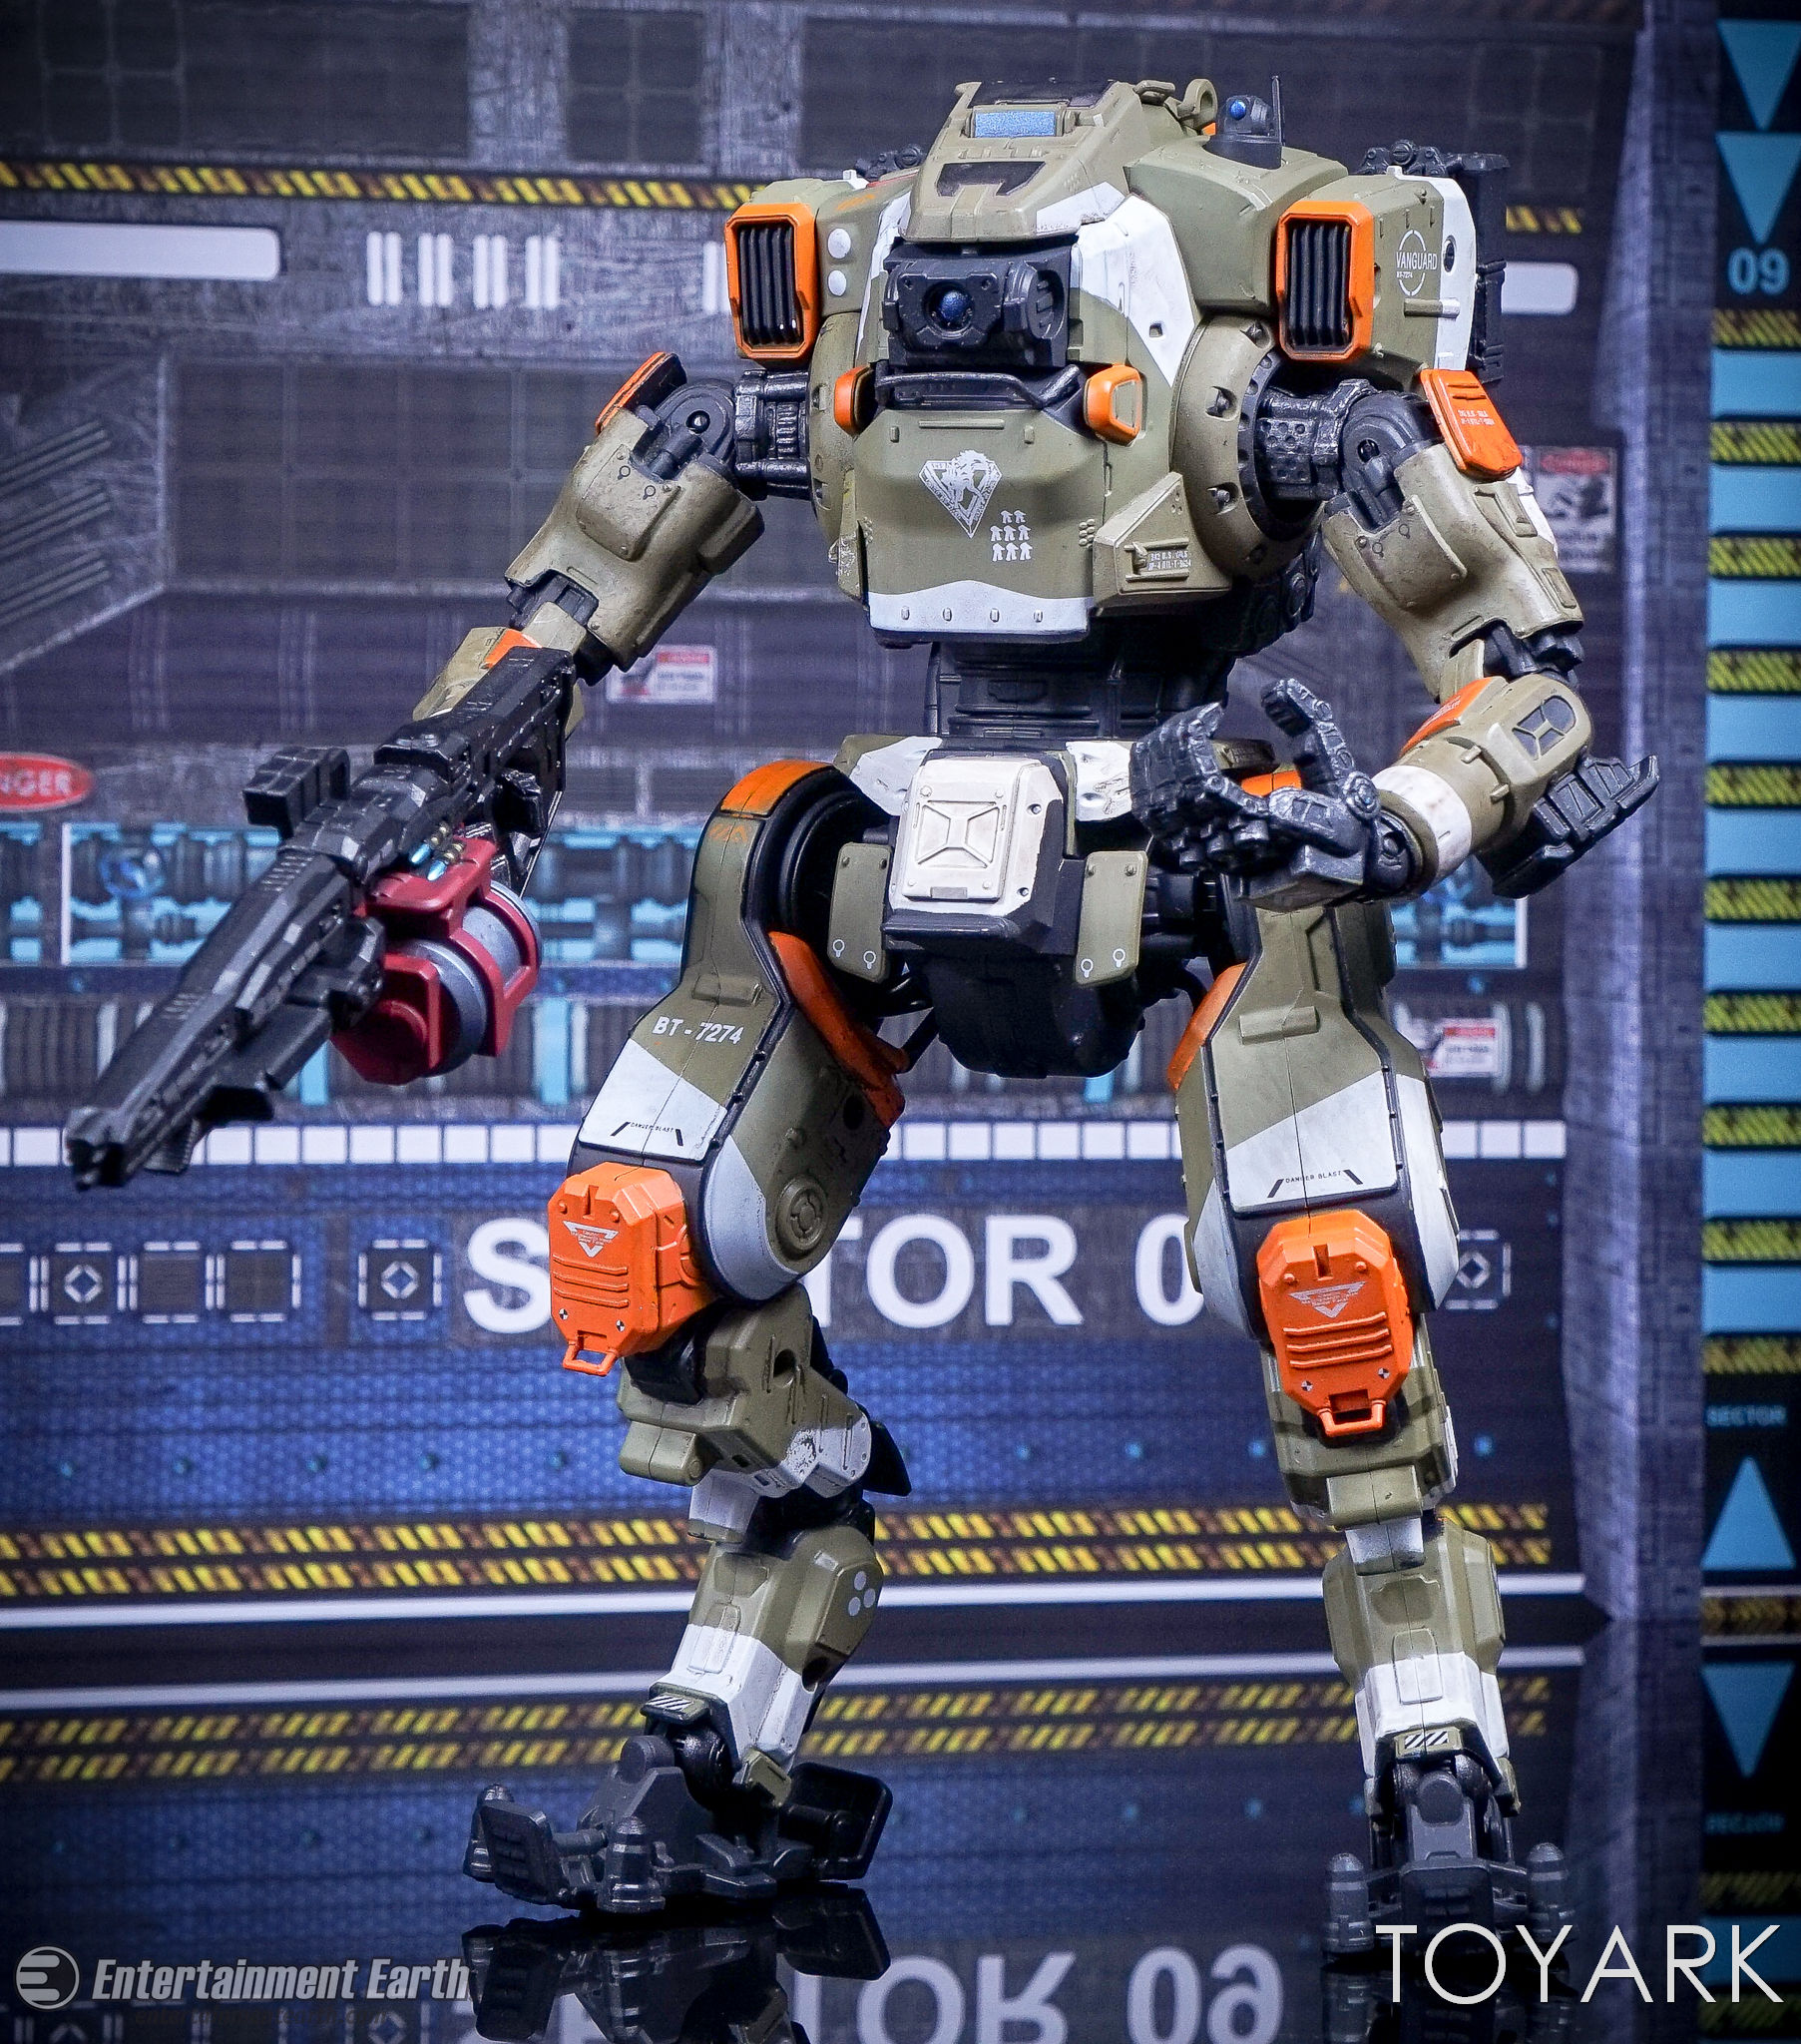 http://news.toyark.com/wp-content/uploads/sites/4/2017/04/McFarlane-BT-7274-Titanfall-2-Figure-033.jpg